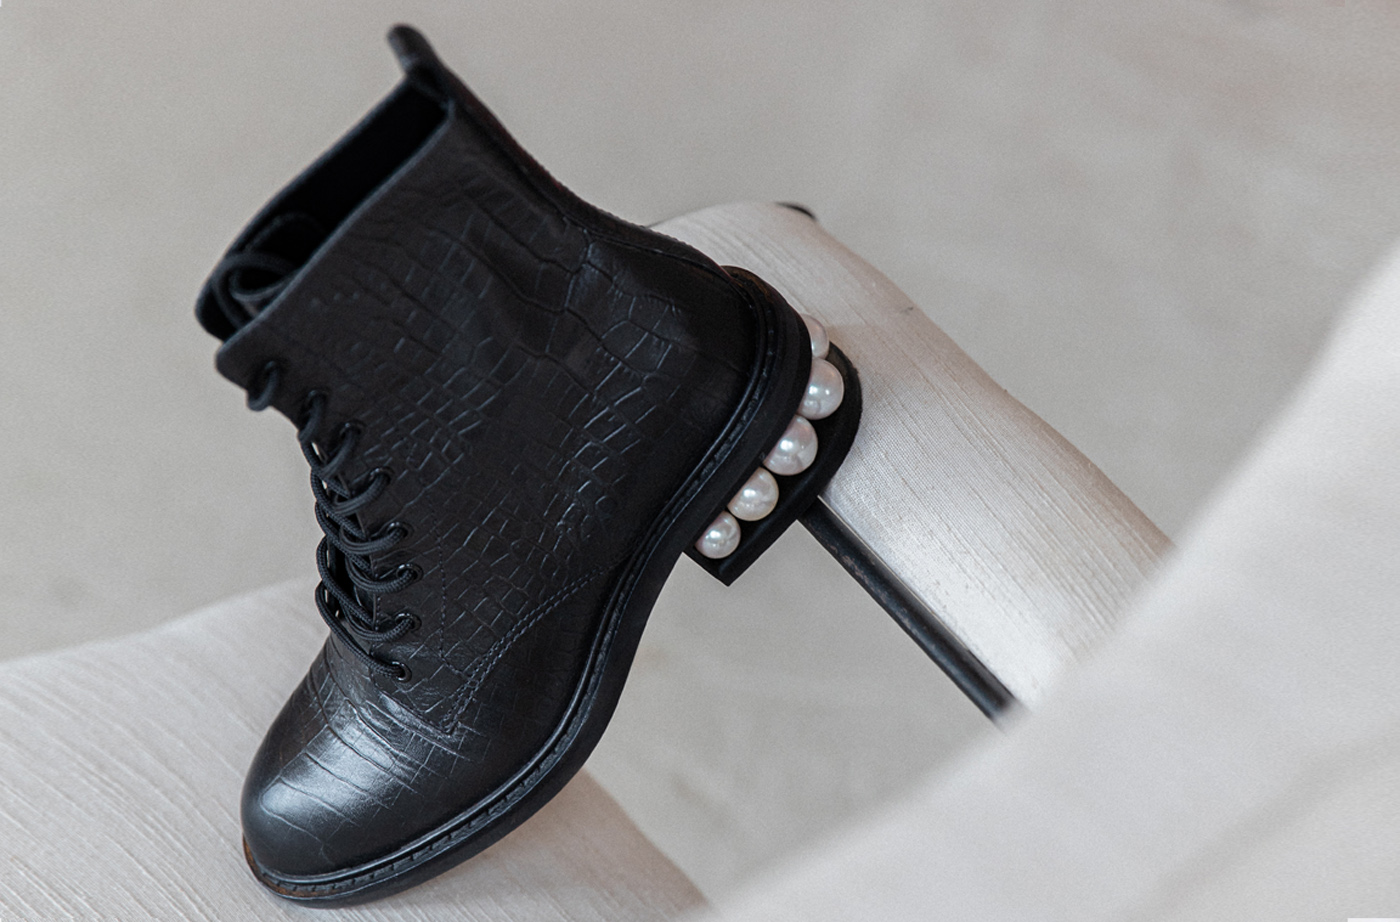 Black croc embossed sustainable boot